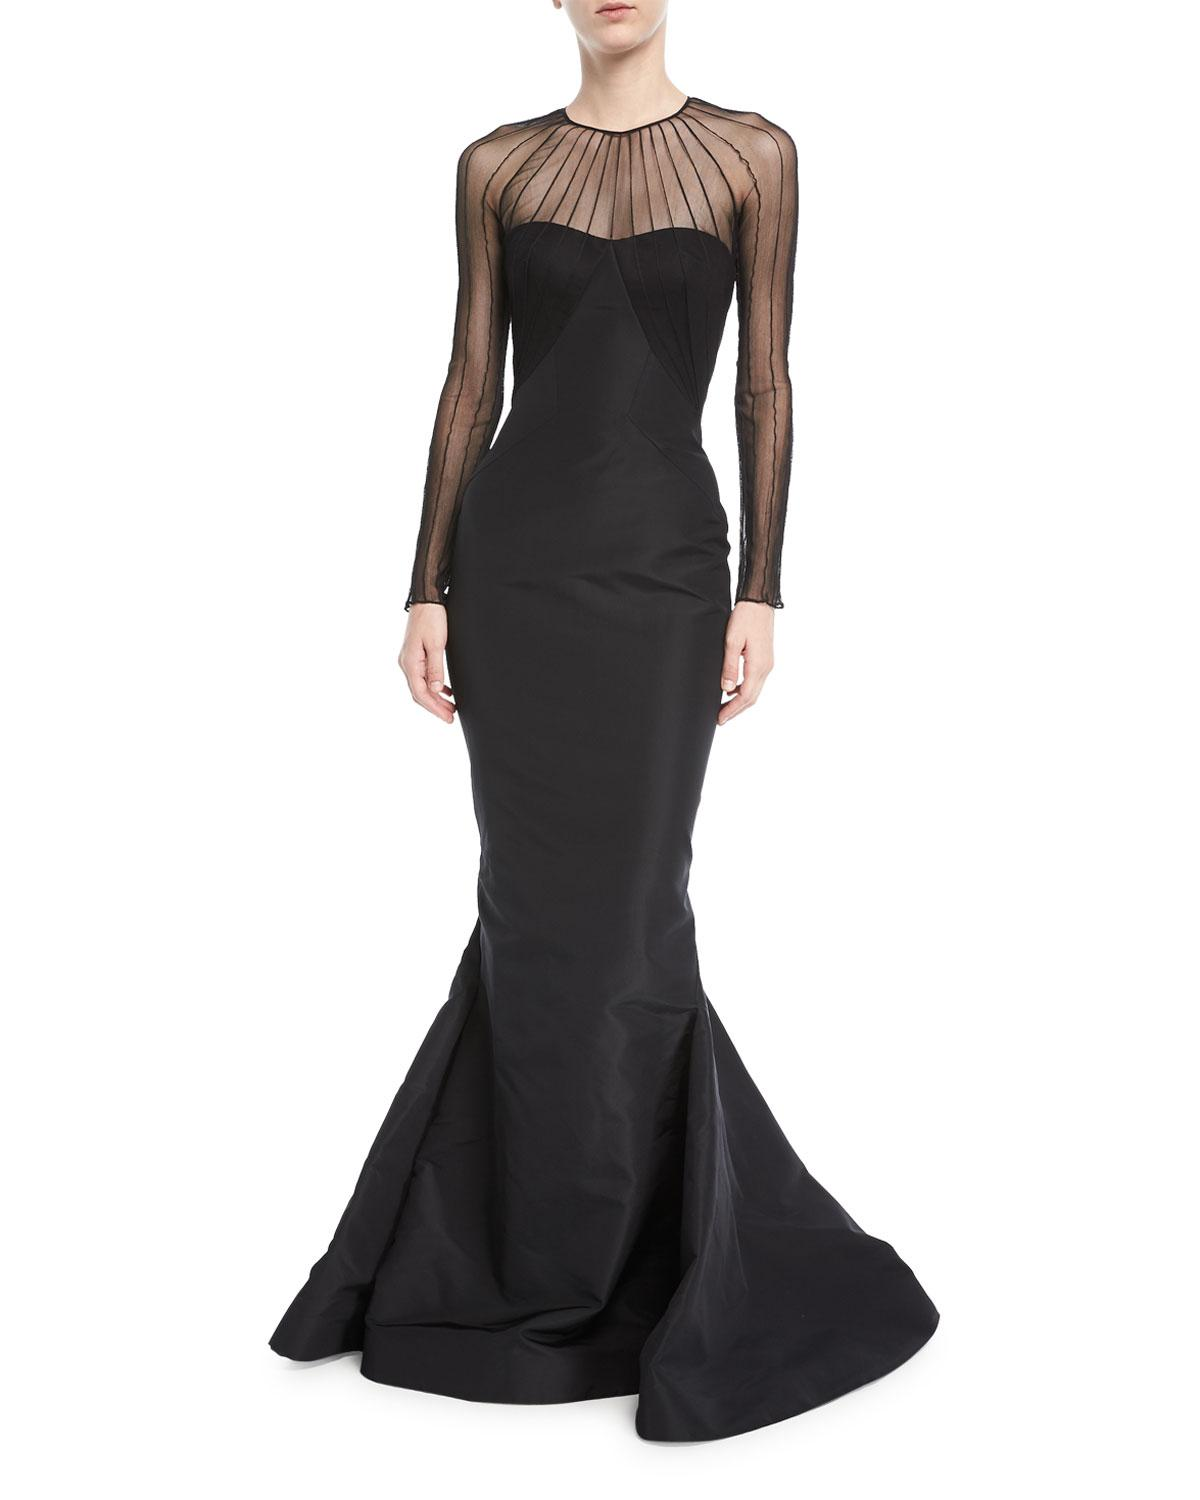 Lyst - Zac Posen Tulle Illusion Long-sleeve Silk Faille Trumpet ...